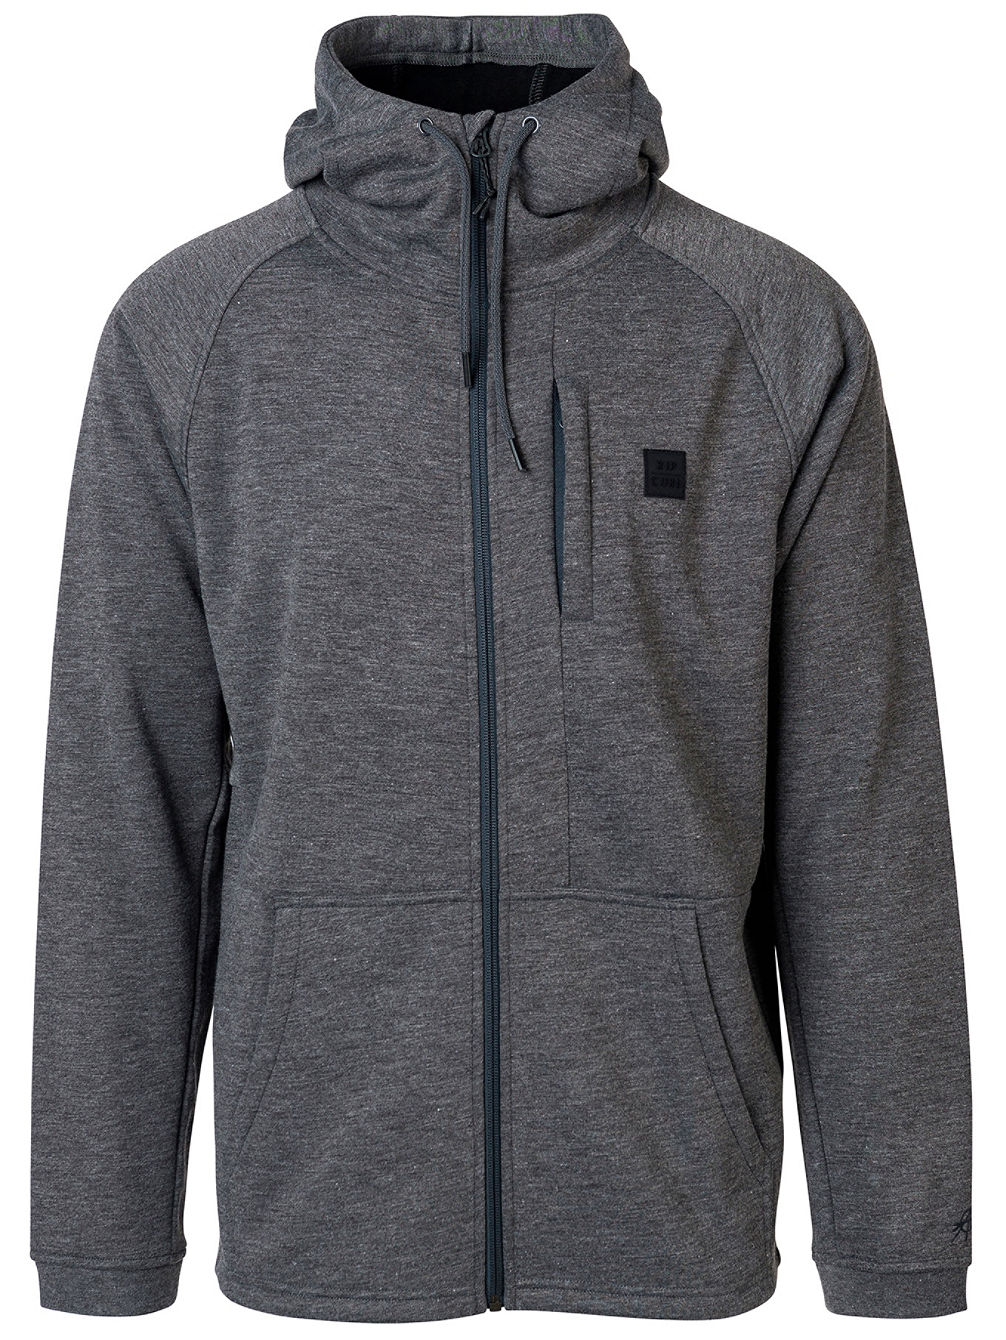 Busy Surf Day Zip Hoodie